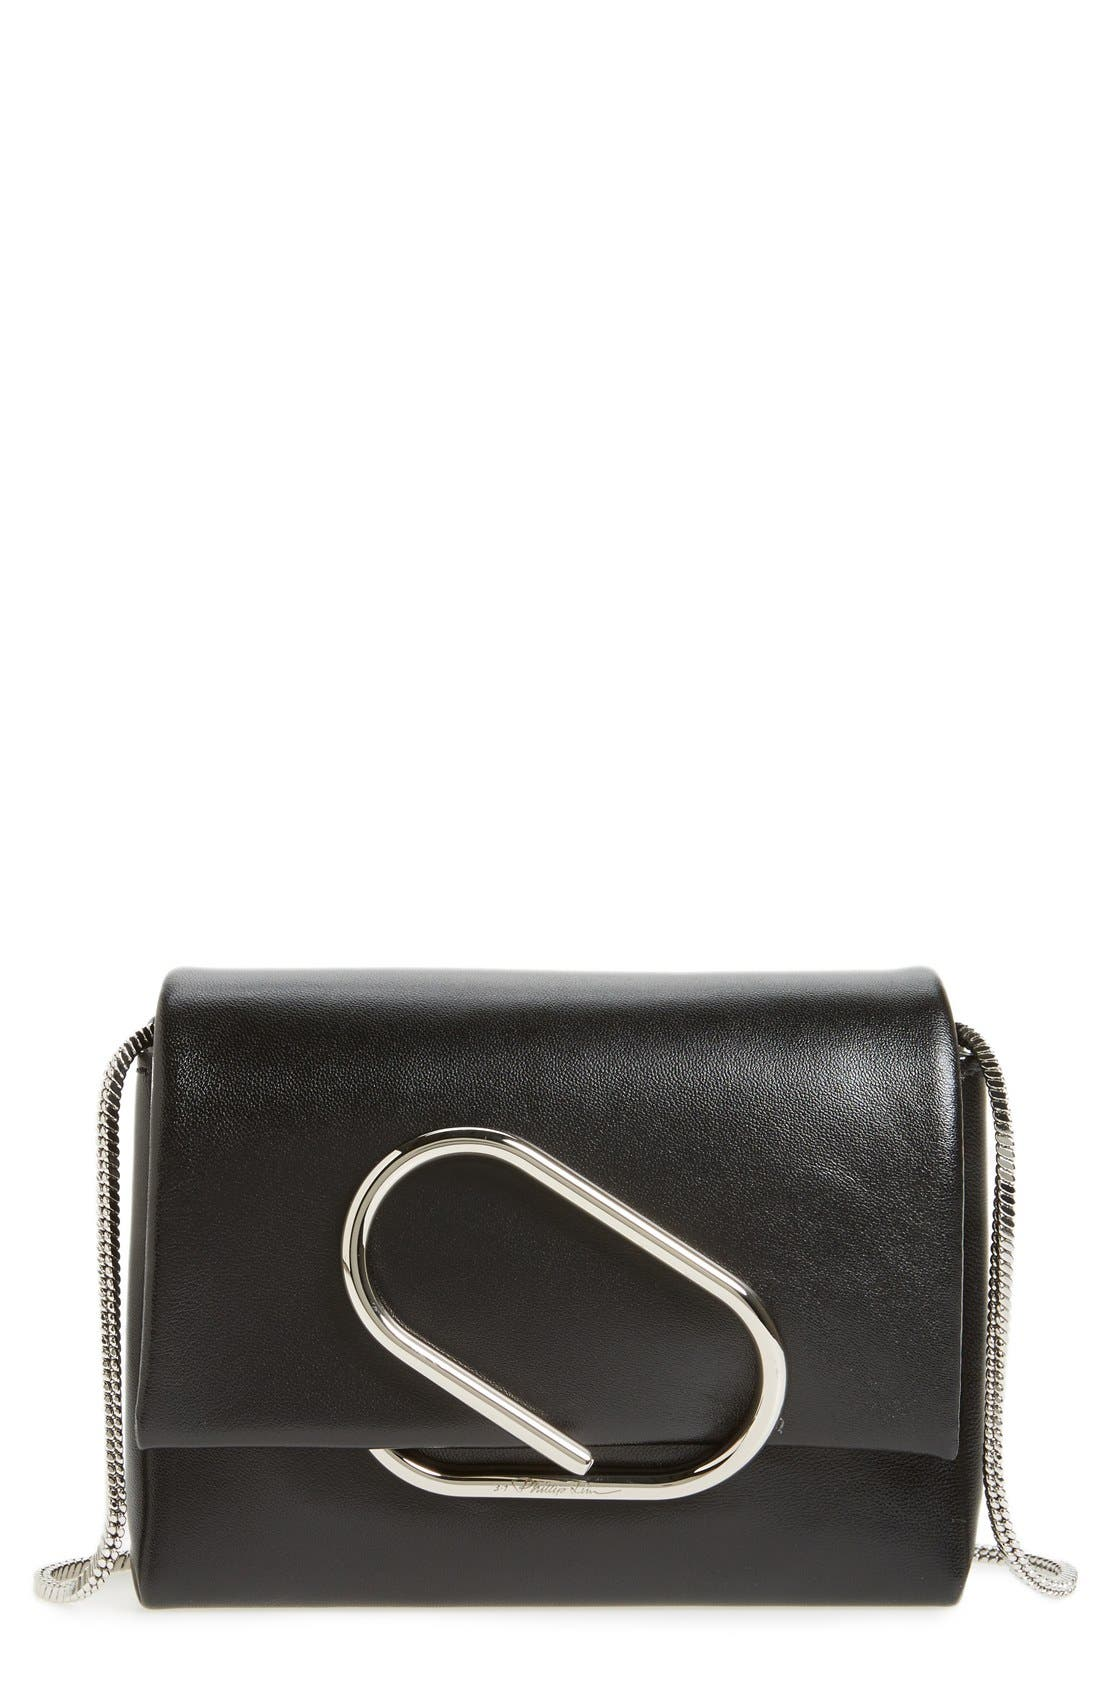 3.1 Phillip Lim Micro Alix Leather Crossbody Bag